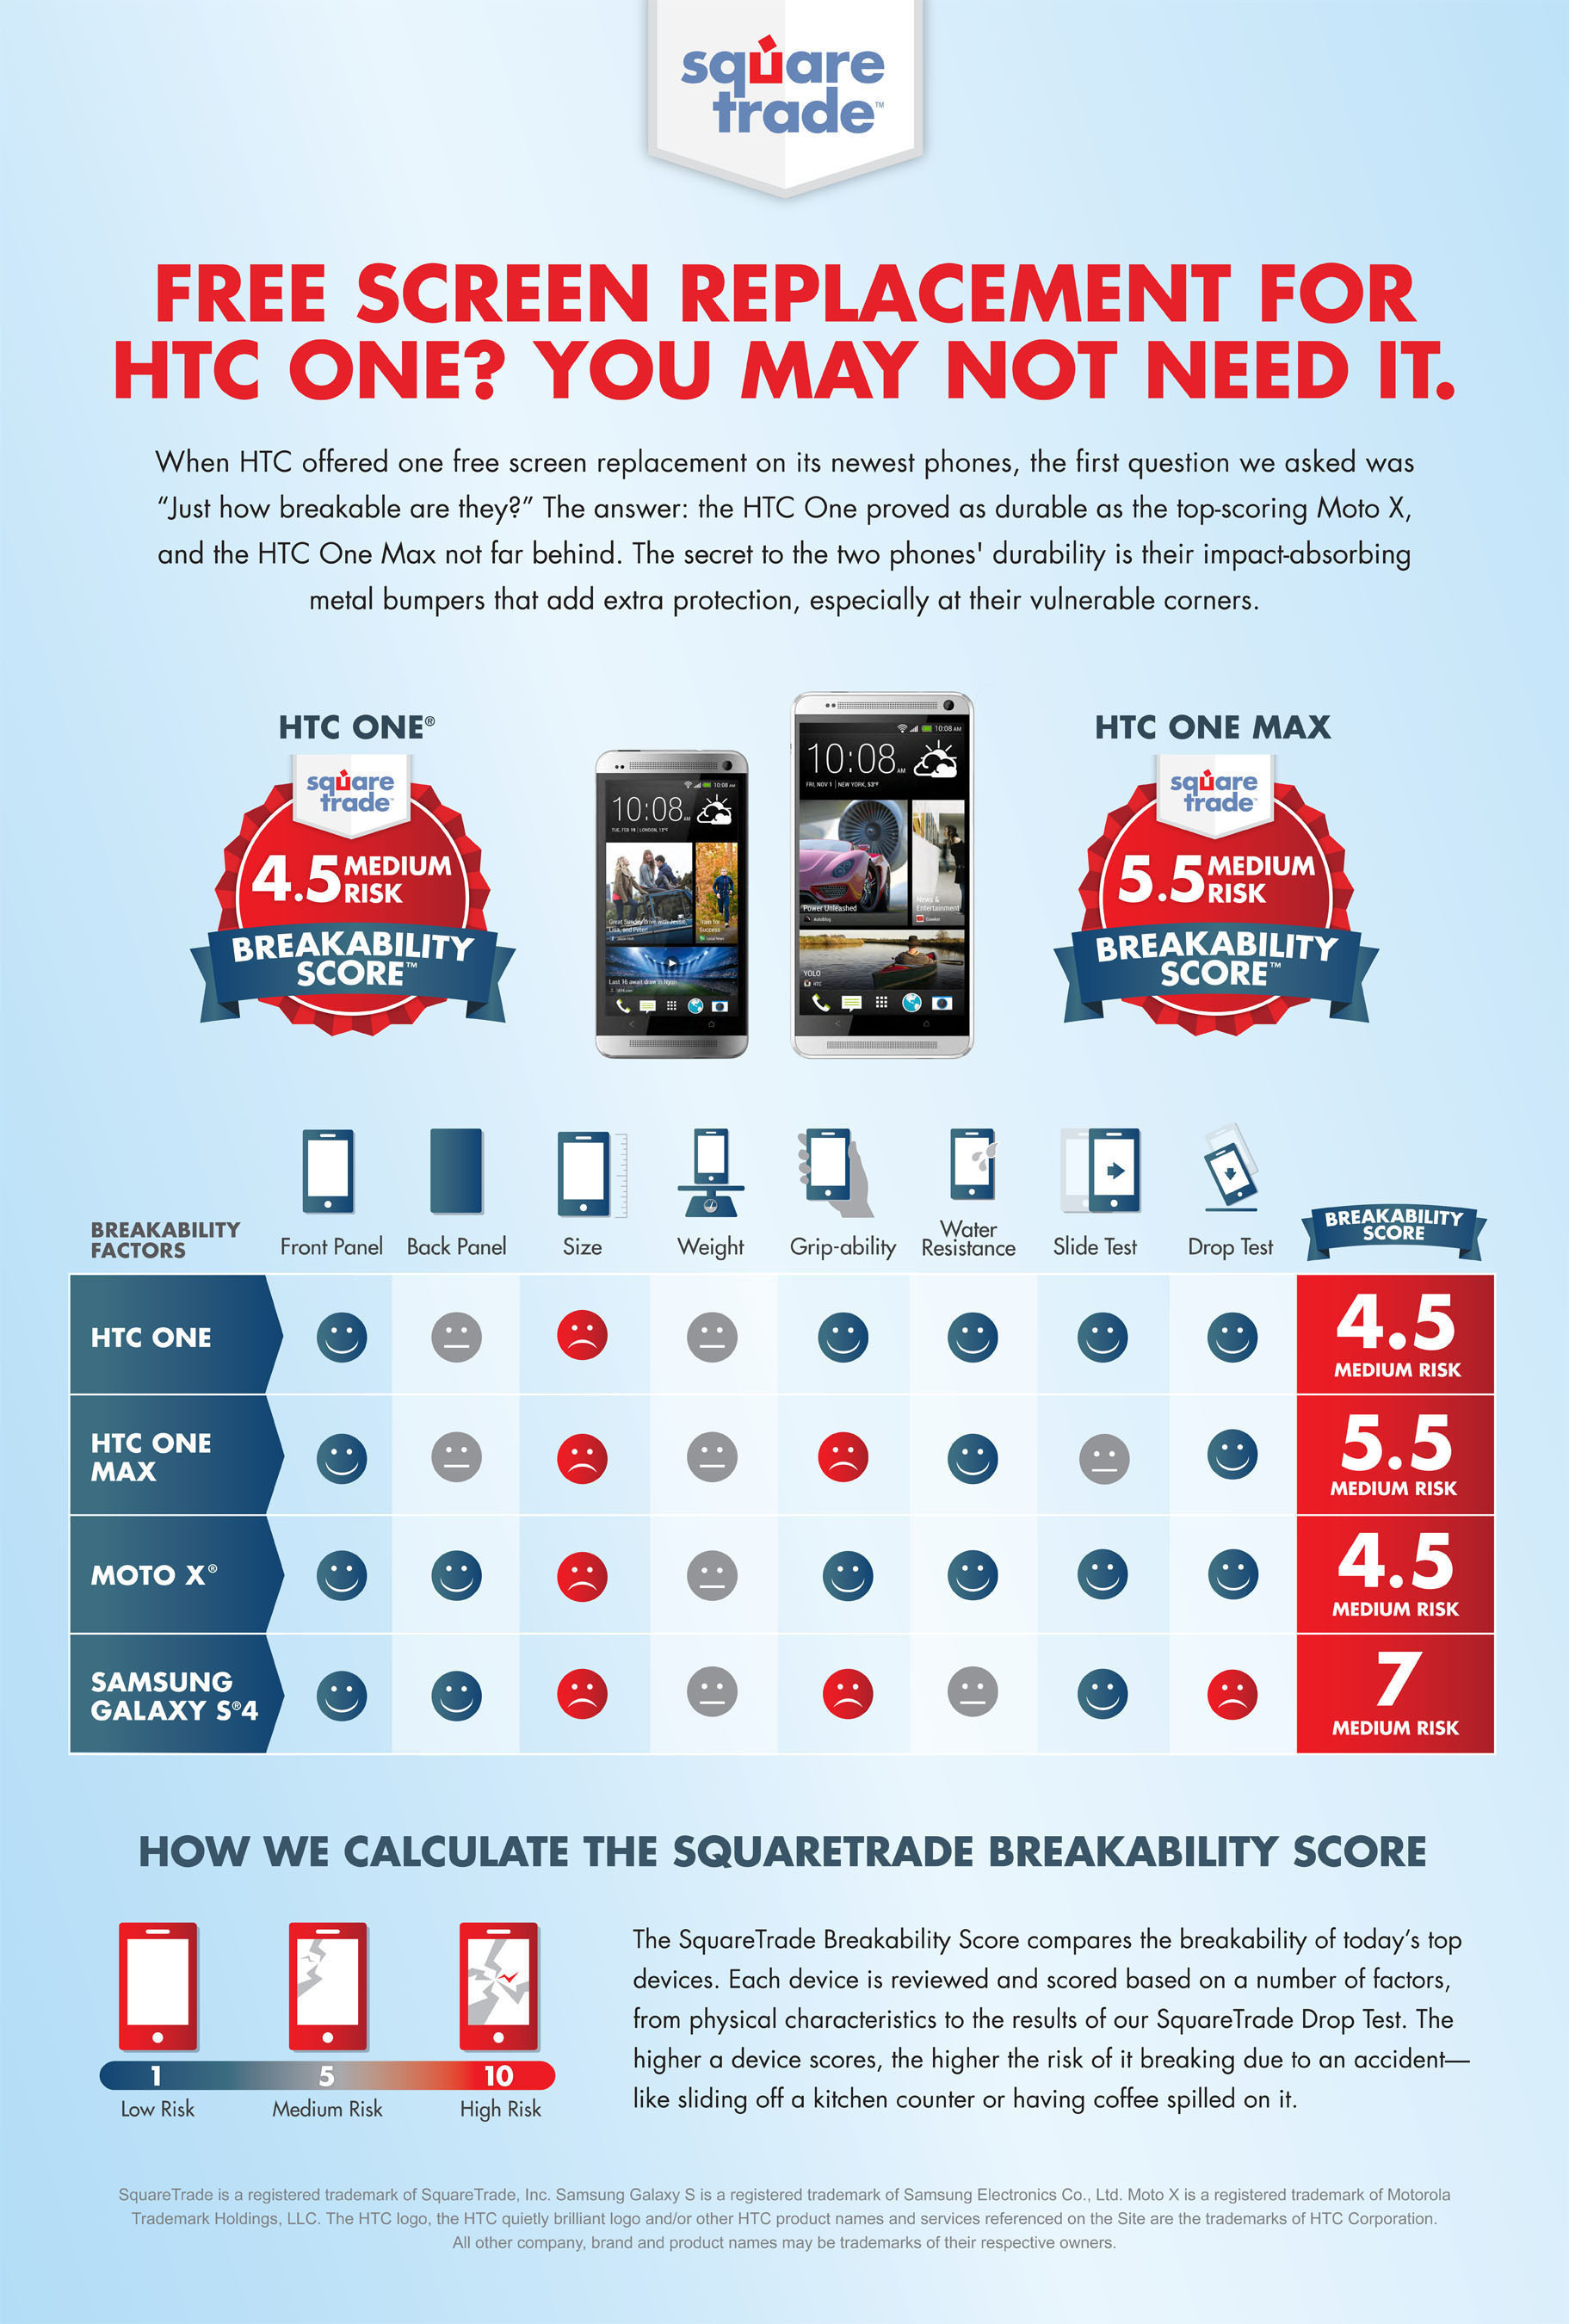 HTC Phones Rank Among Least Breakable in Latest Breakability Score(TM) from SquareTrade.  (PRNewsFoto/SquareTrade)